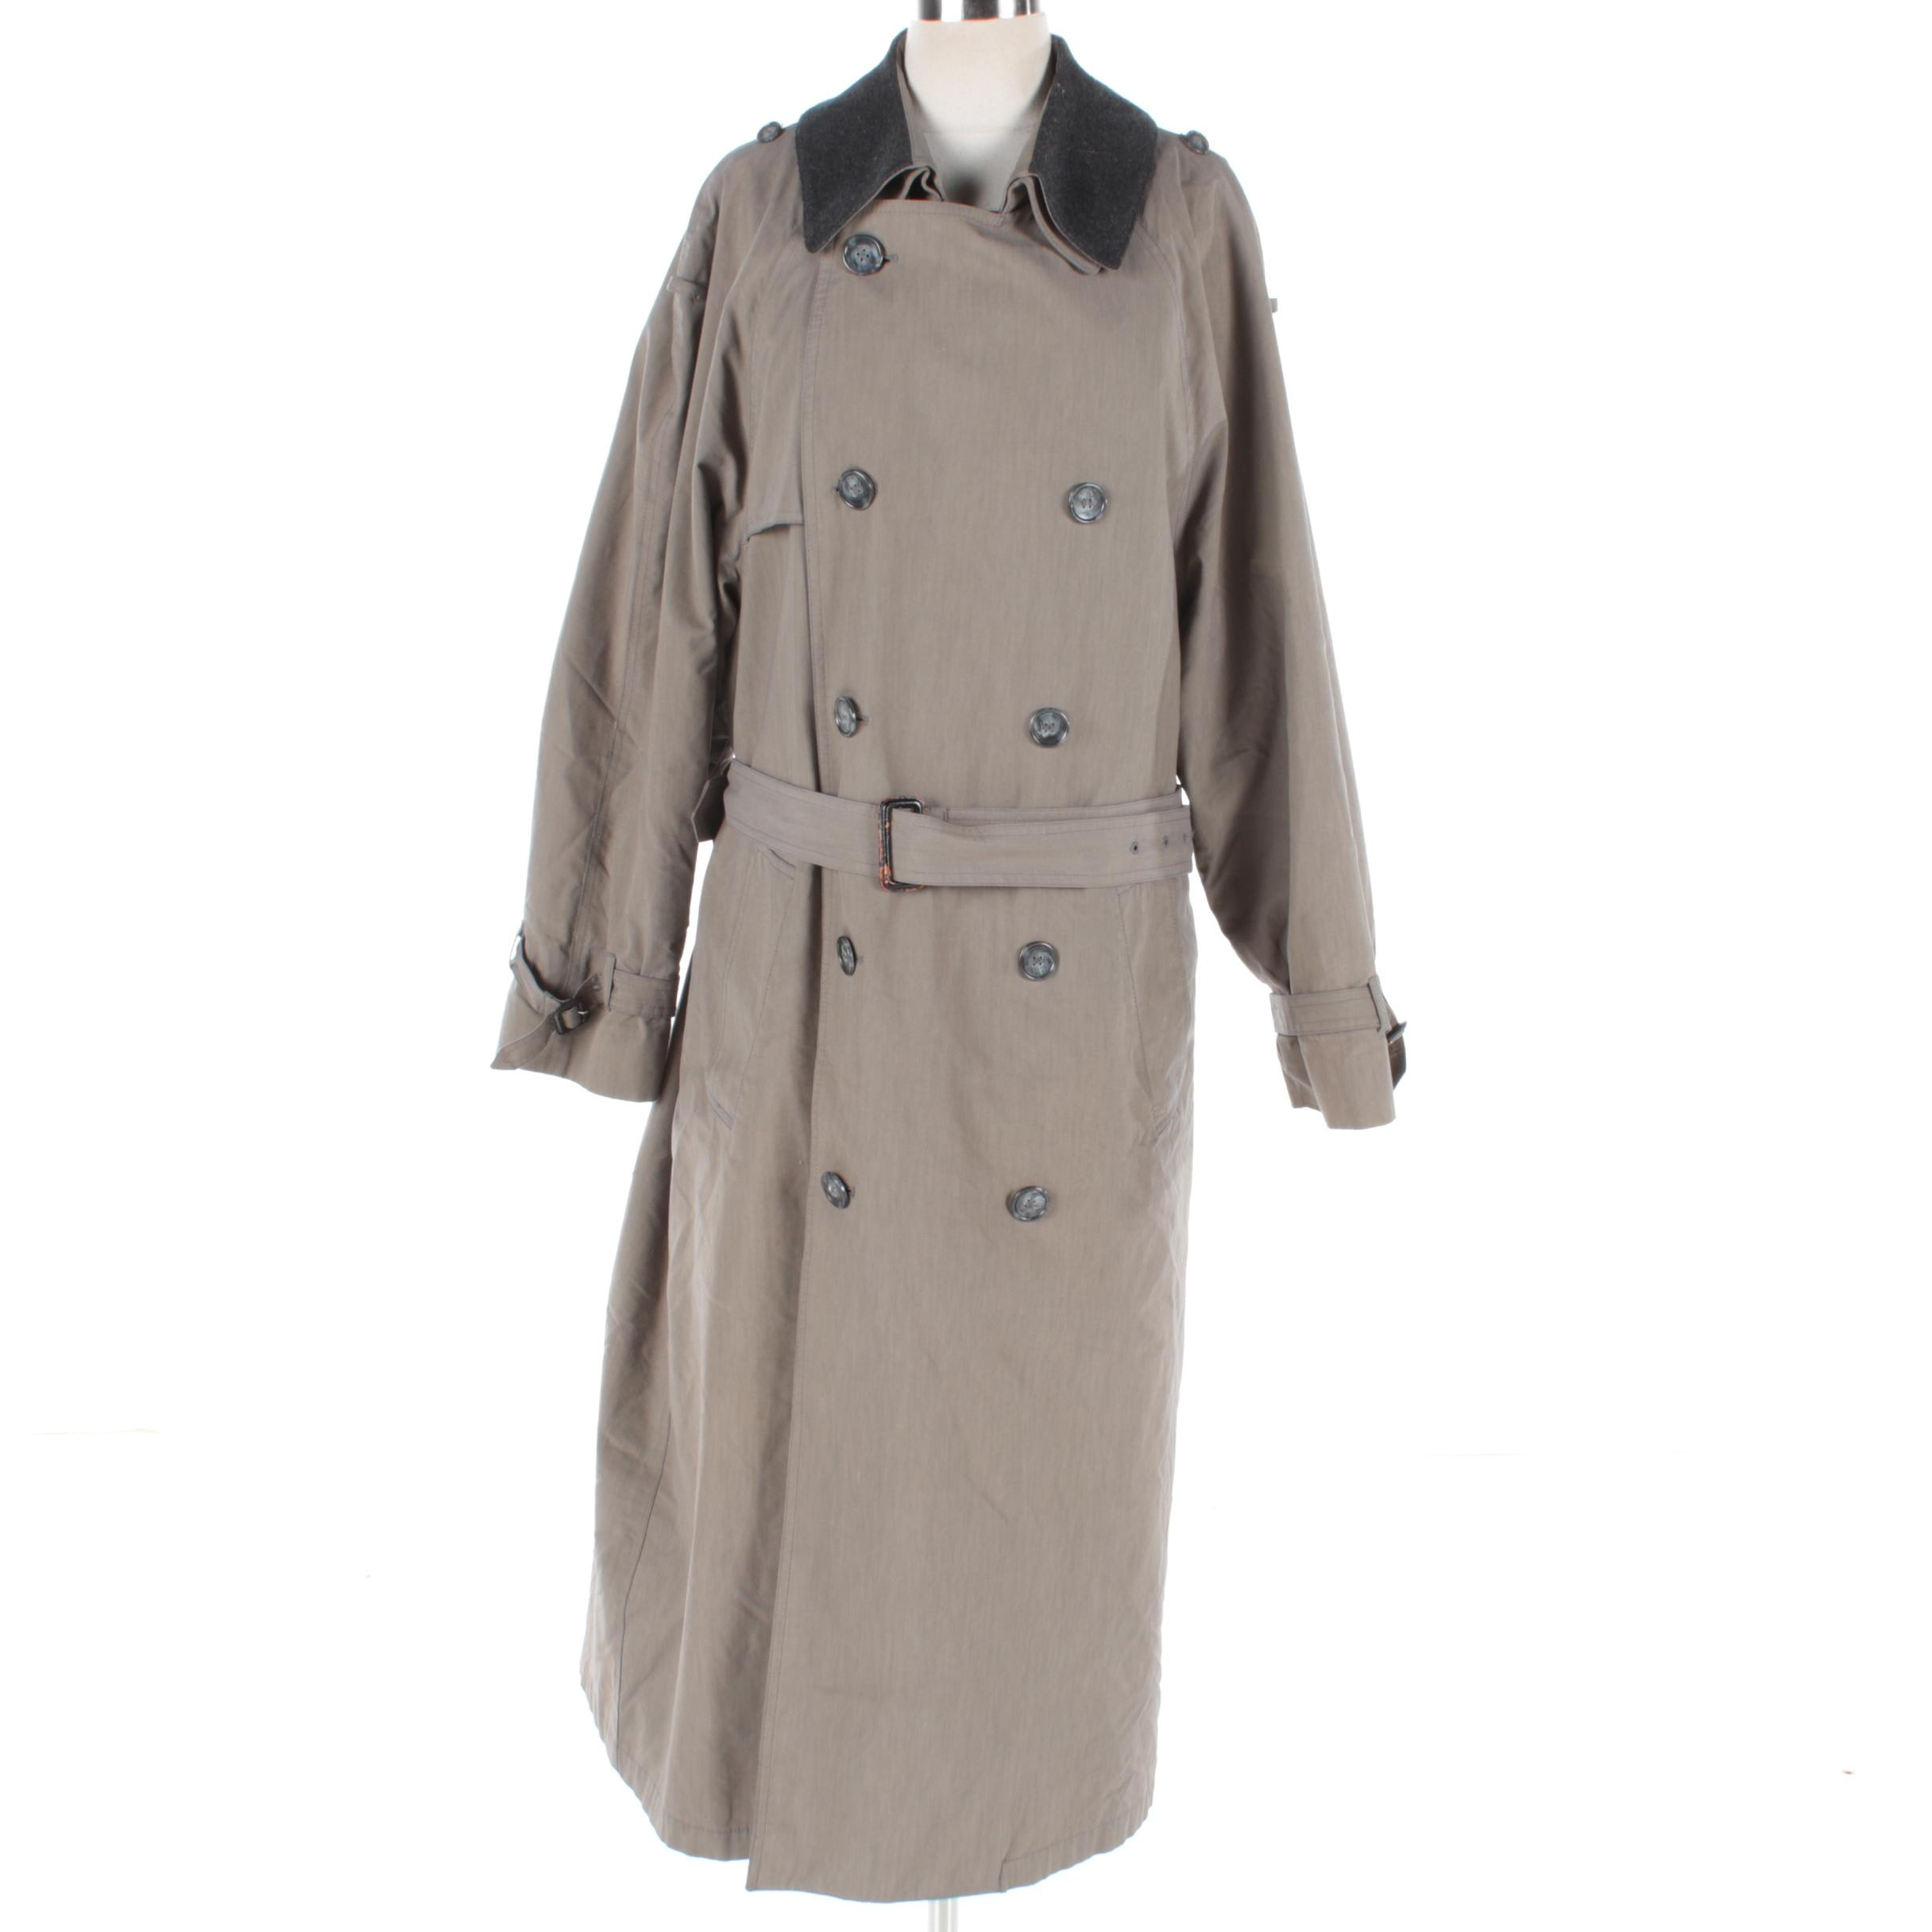 Men's London Fog Double-Breasted Trench Coat with Lining